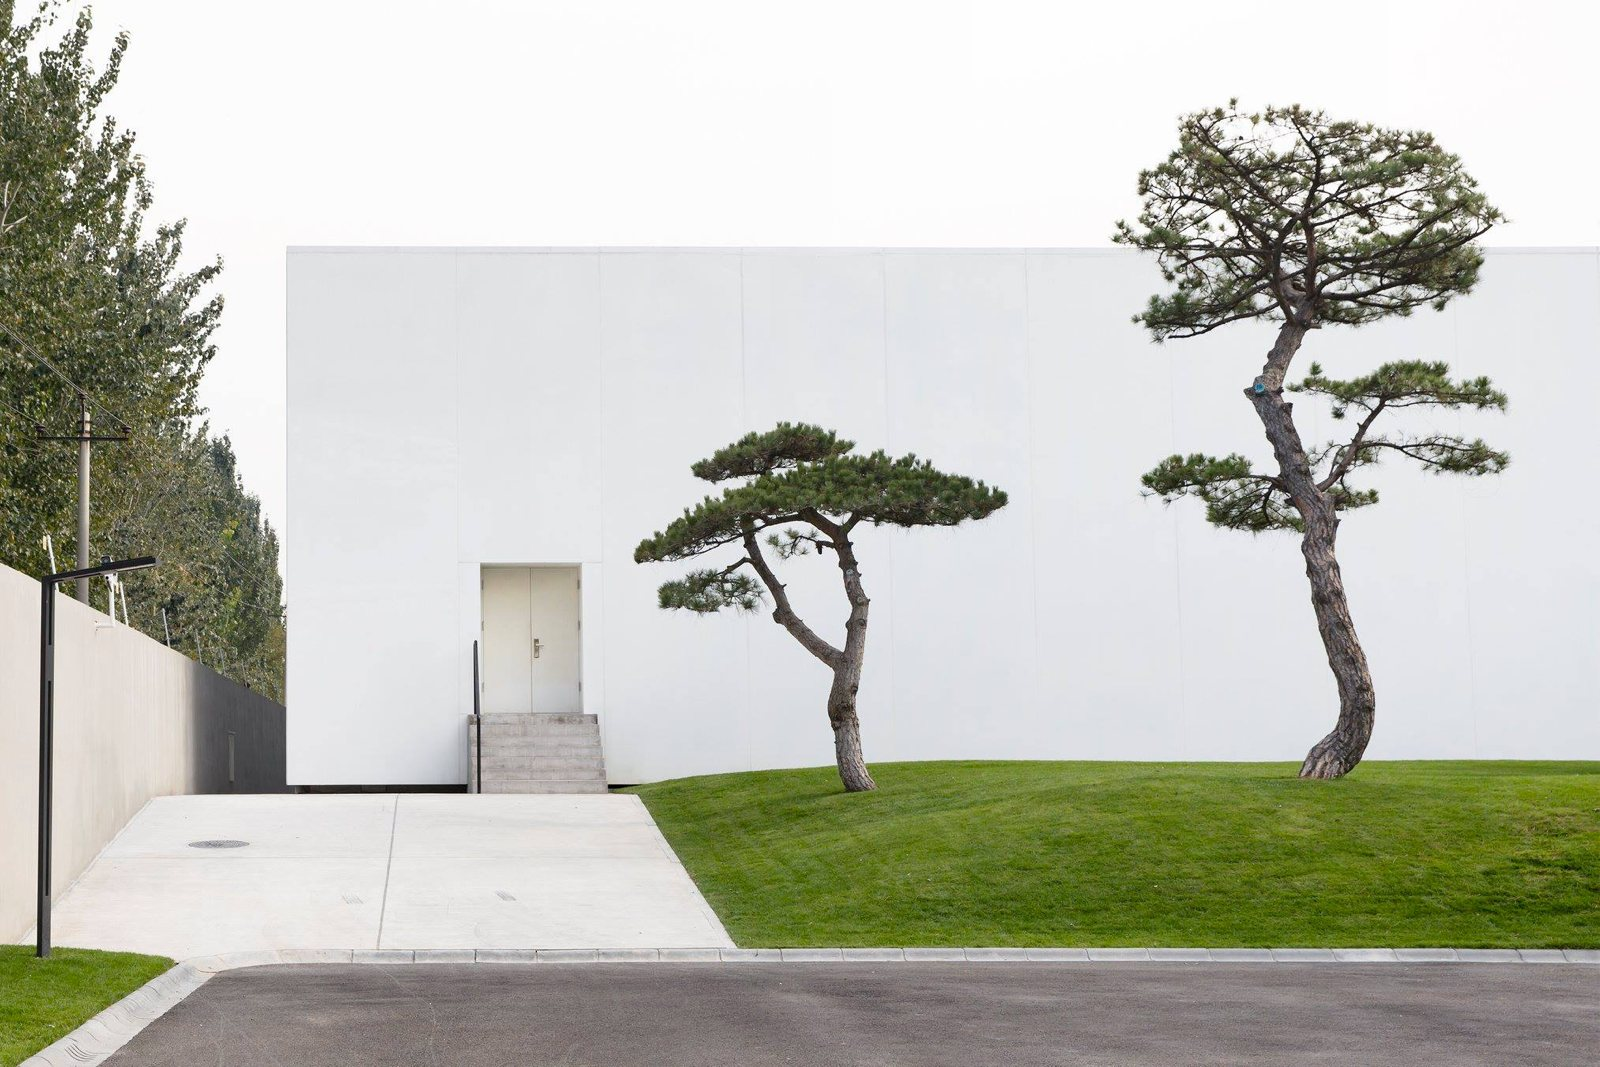 Beau Box Shaped Building With Pine Tree Garden Song Art Museum By Vermilion Zhou  Design Group